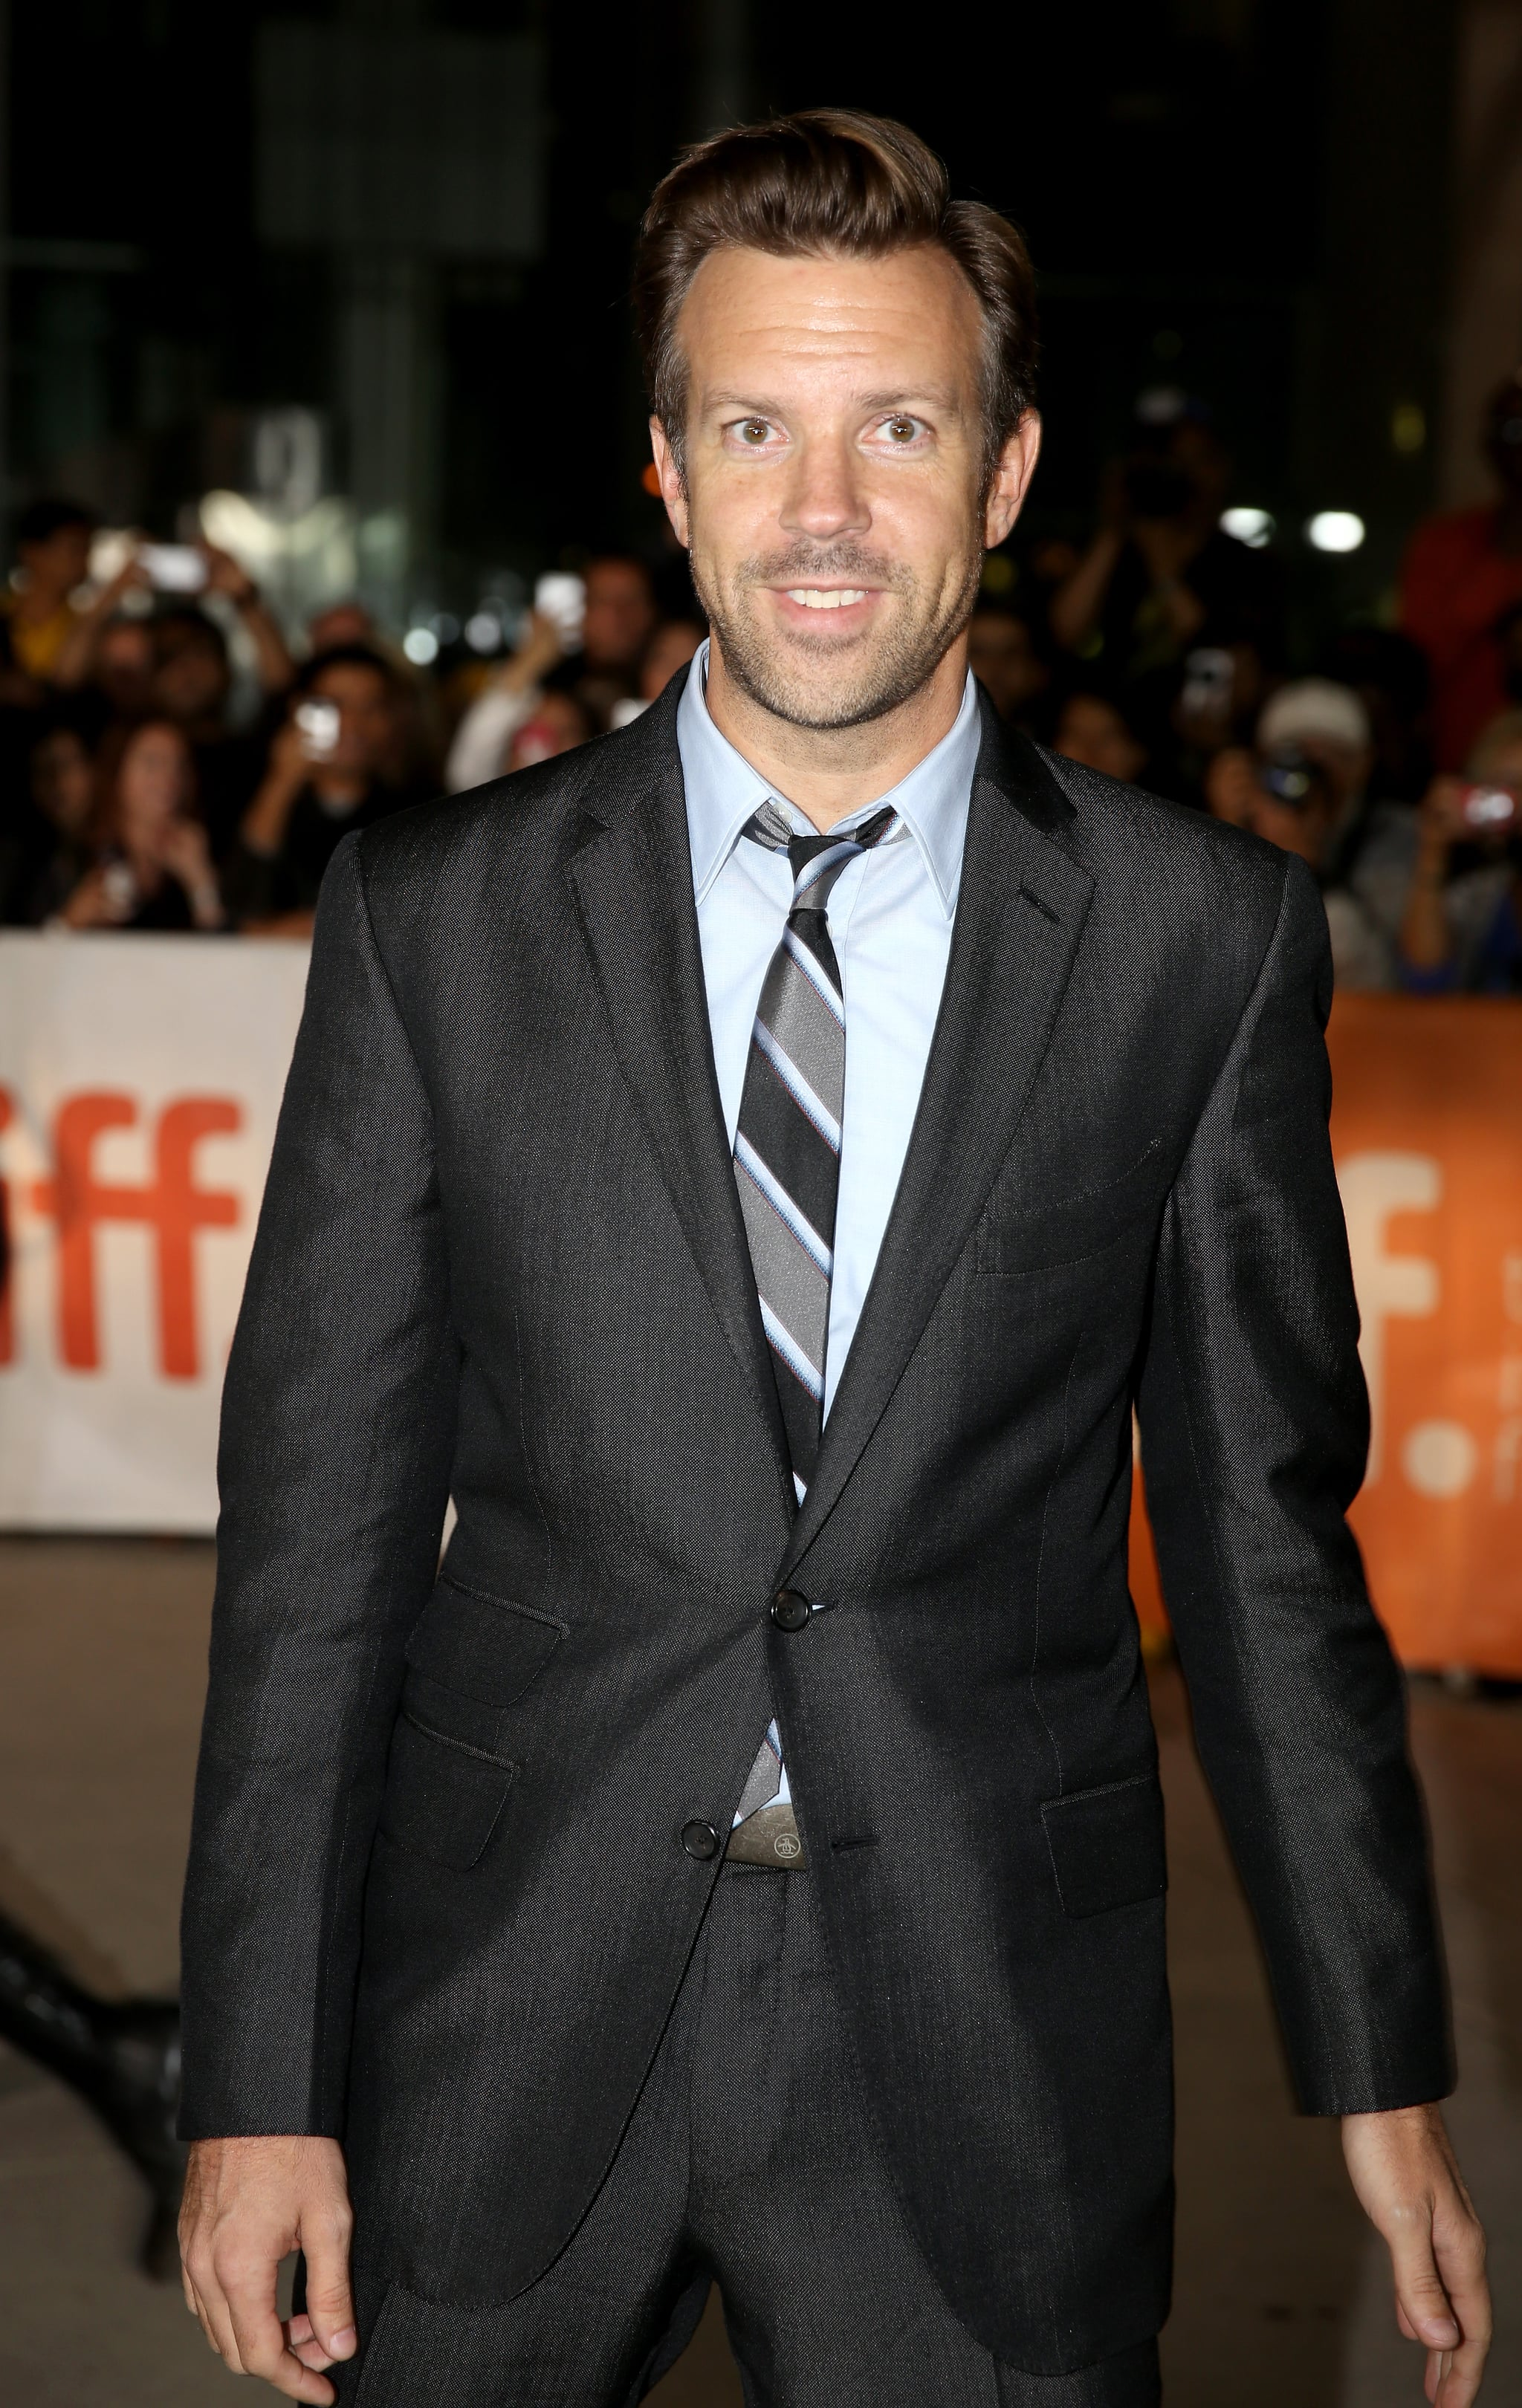 Jason Sudeikis sported a slim suit to the event.